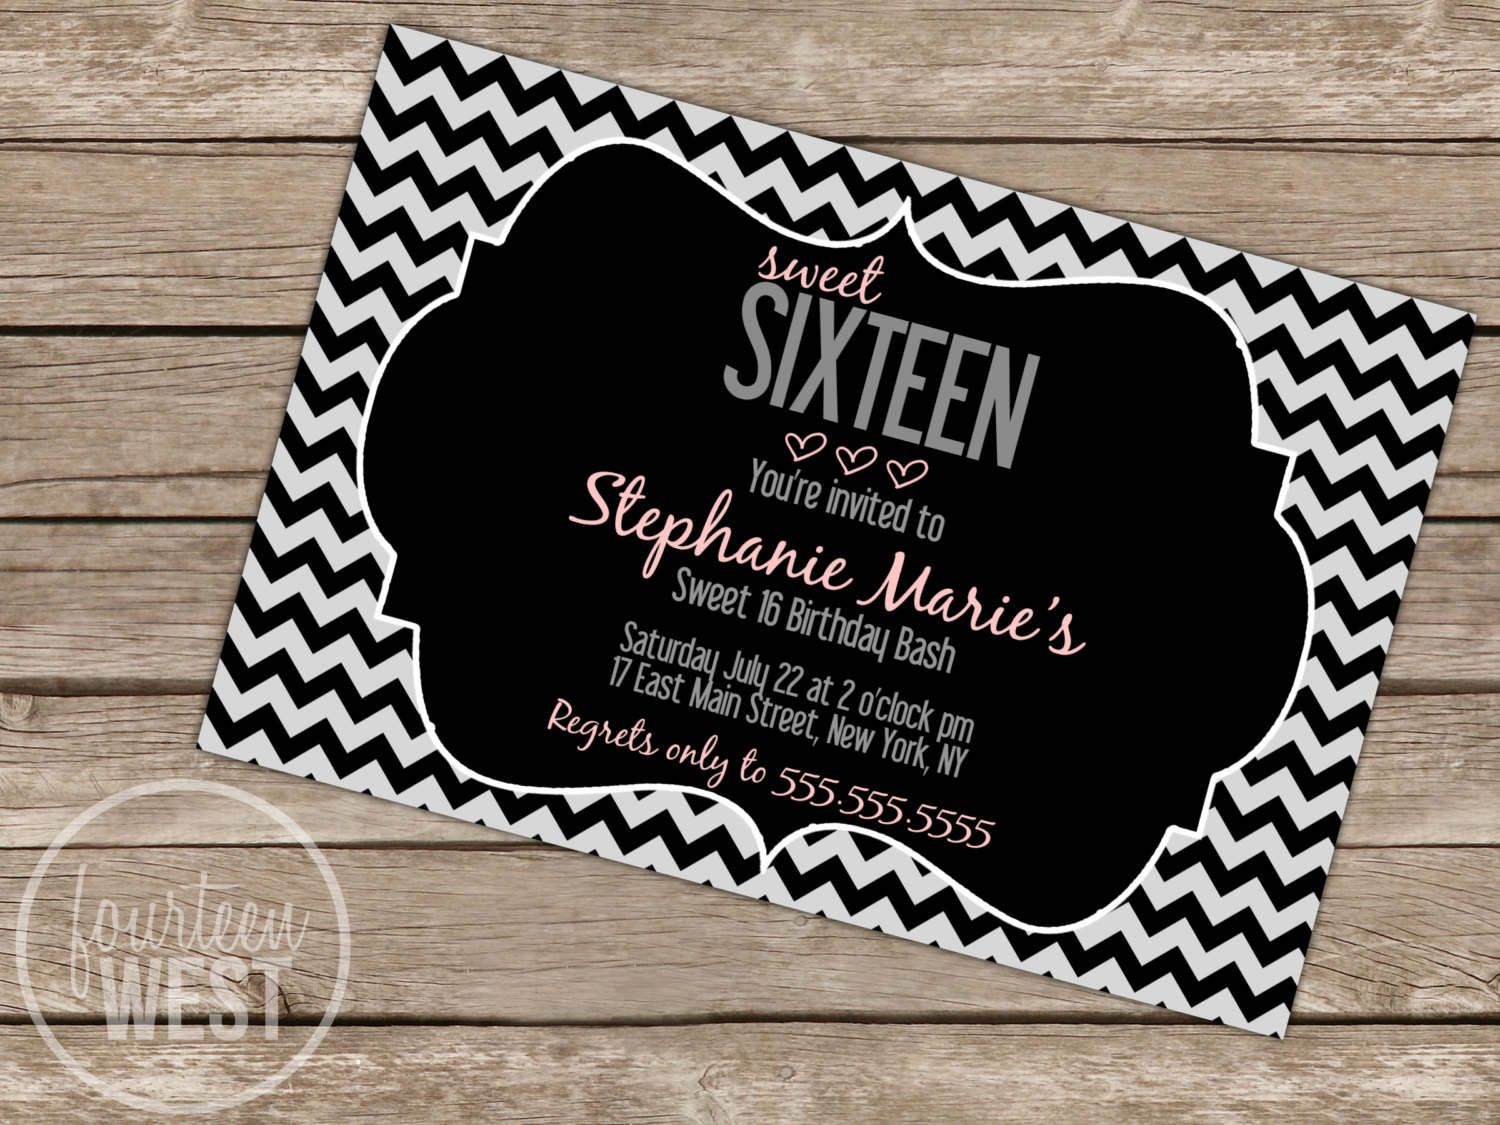 Free Printable Sweet 16 Party Invitations | Invitation Sample ...